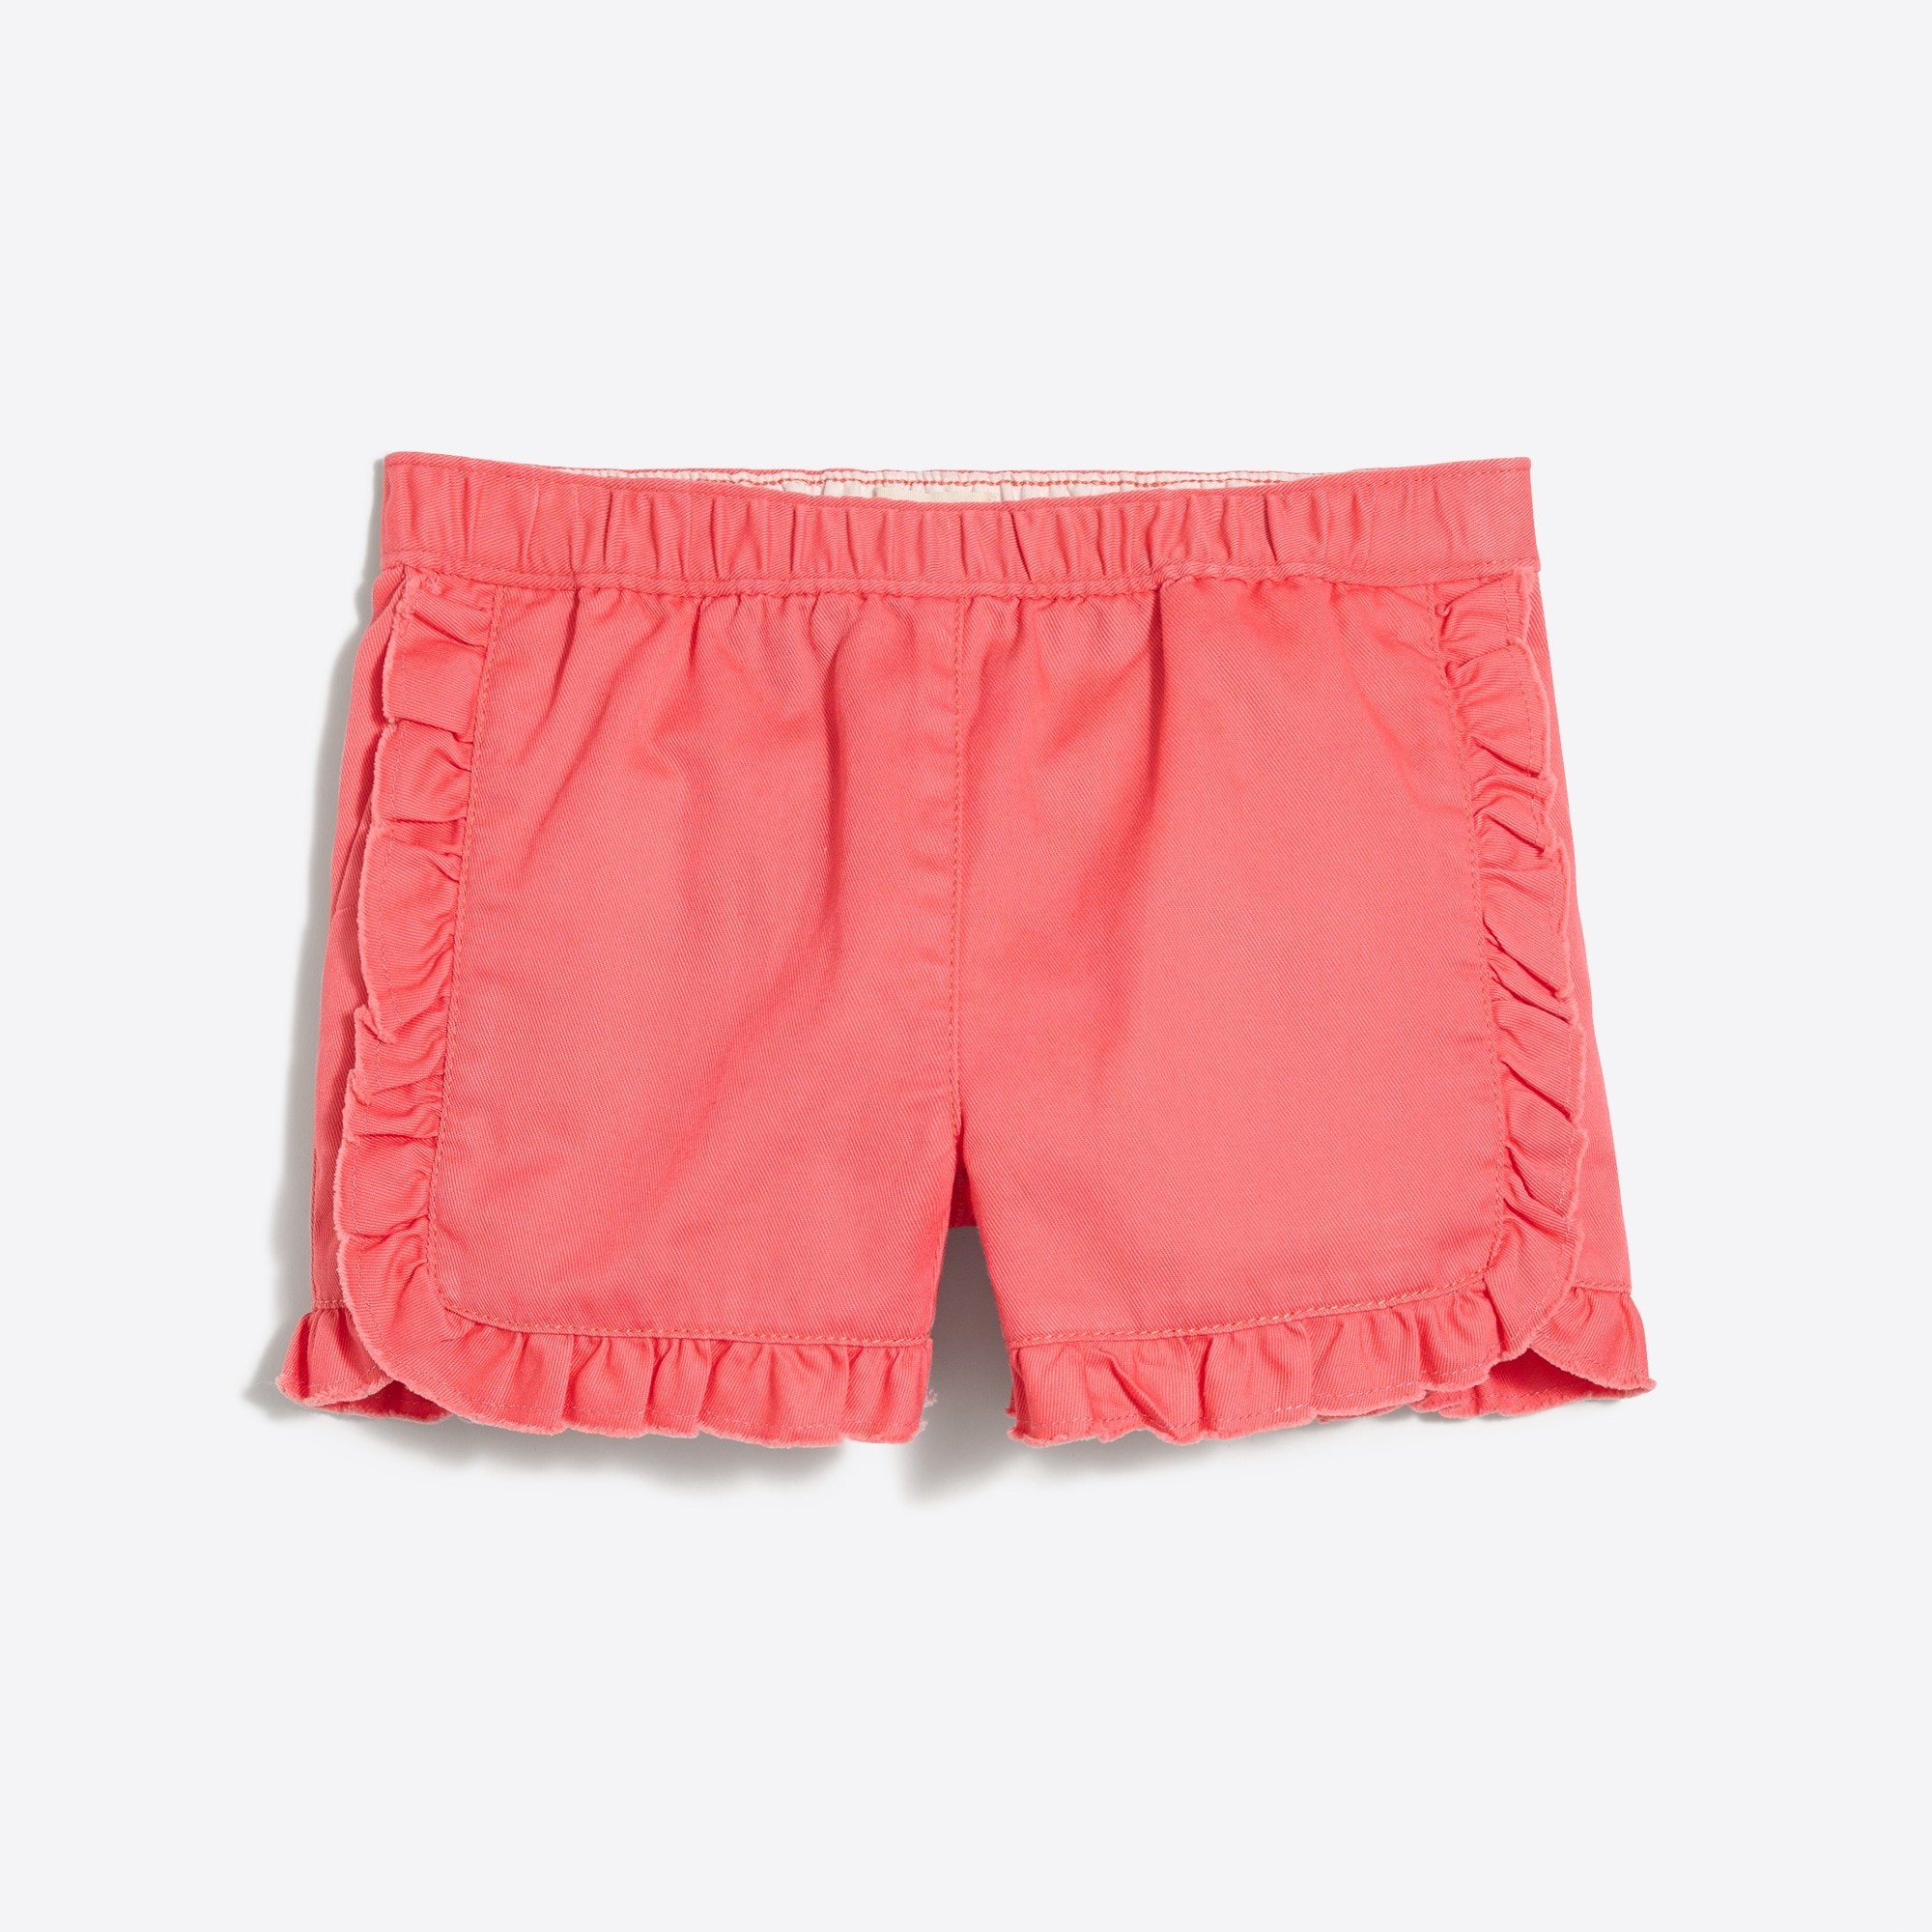 Girls' pull-on ruffle short in chino factorygirls shorts & rompers c